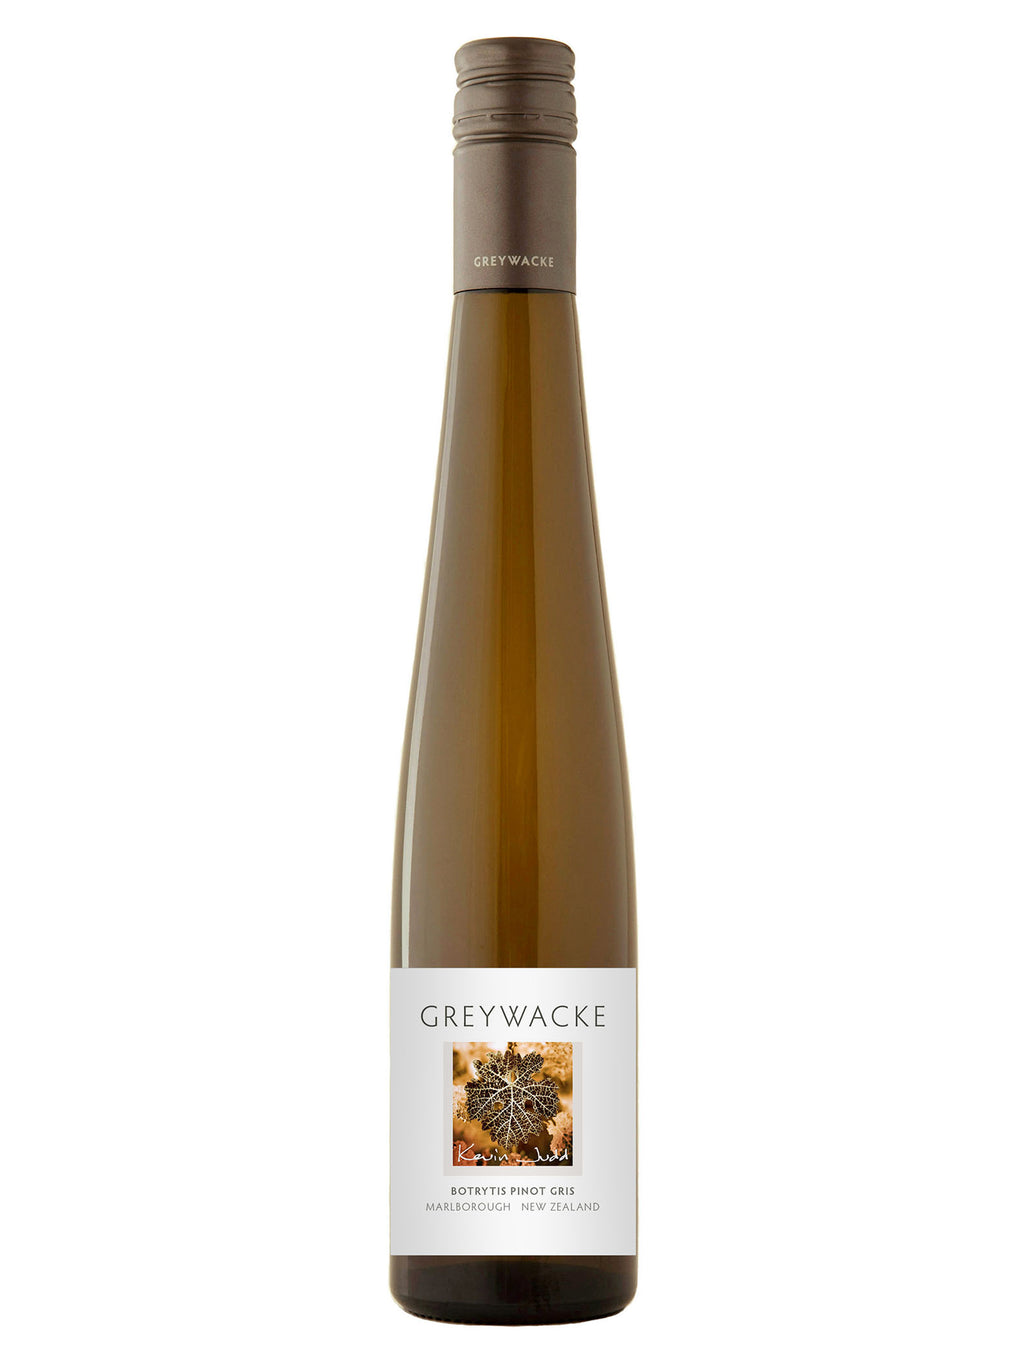 Greywacke Pint Gris, Botrytis Pinot Gris, Dessert Wine, New Zealand Dessert Wine, Sweet Wine, New Zealand Wine, New Zealand Wine Events, Auckland Wine Events, Winetopia, Auckland Restaurant Month, Online Wine Shop, New Zealand Wine Shop, Marlborough Winery